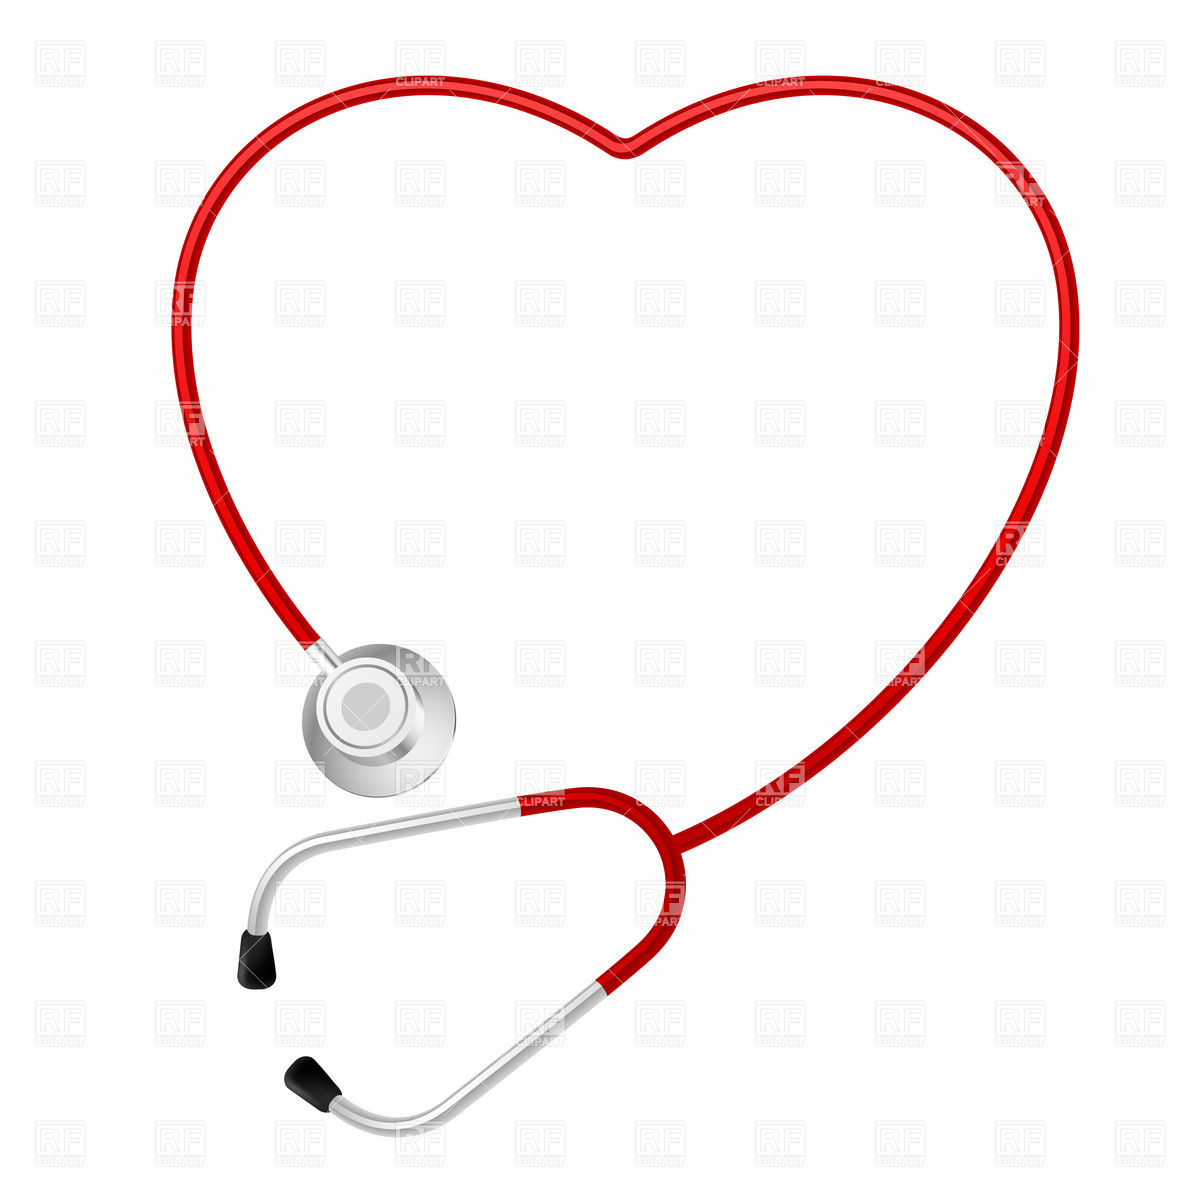 Medical Heart Clipart - Clipart Kid